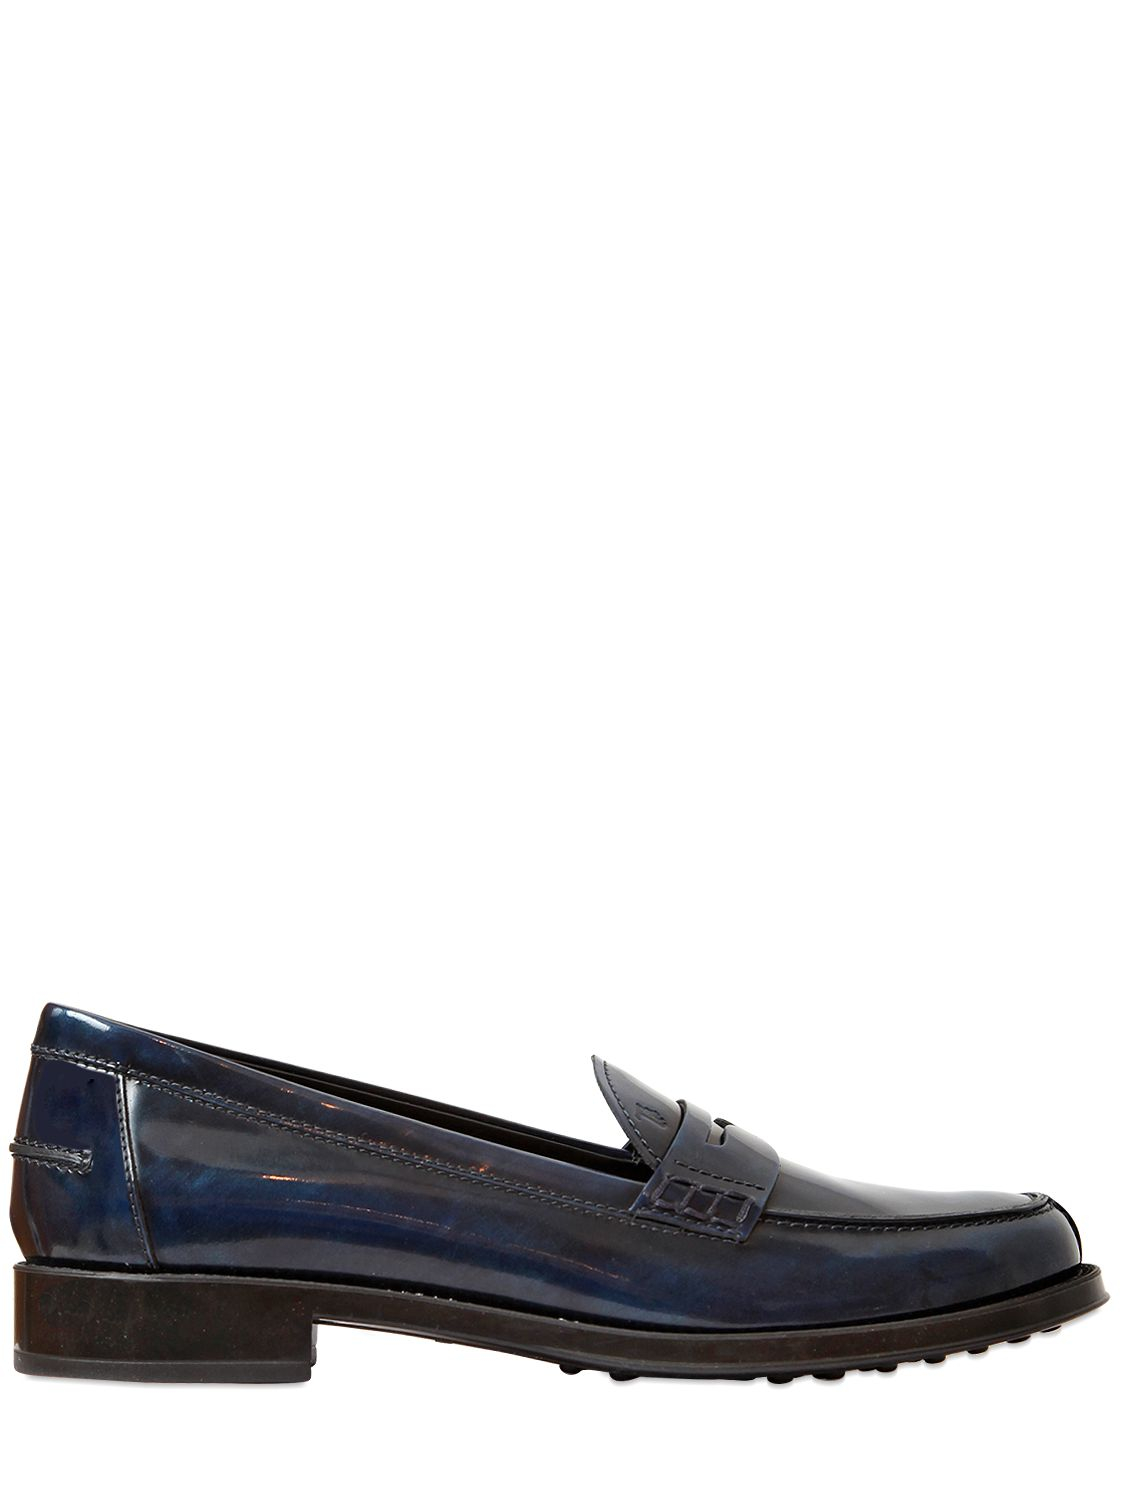 67d77018ec4 Lyst - Tod s 25Mm Brushed Leather Penny Loafers in Blue for Men